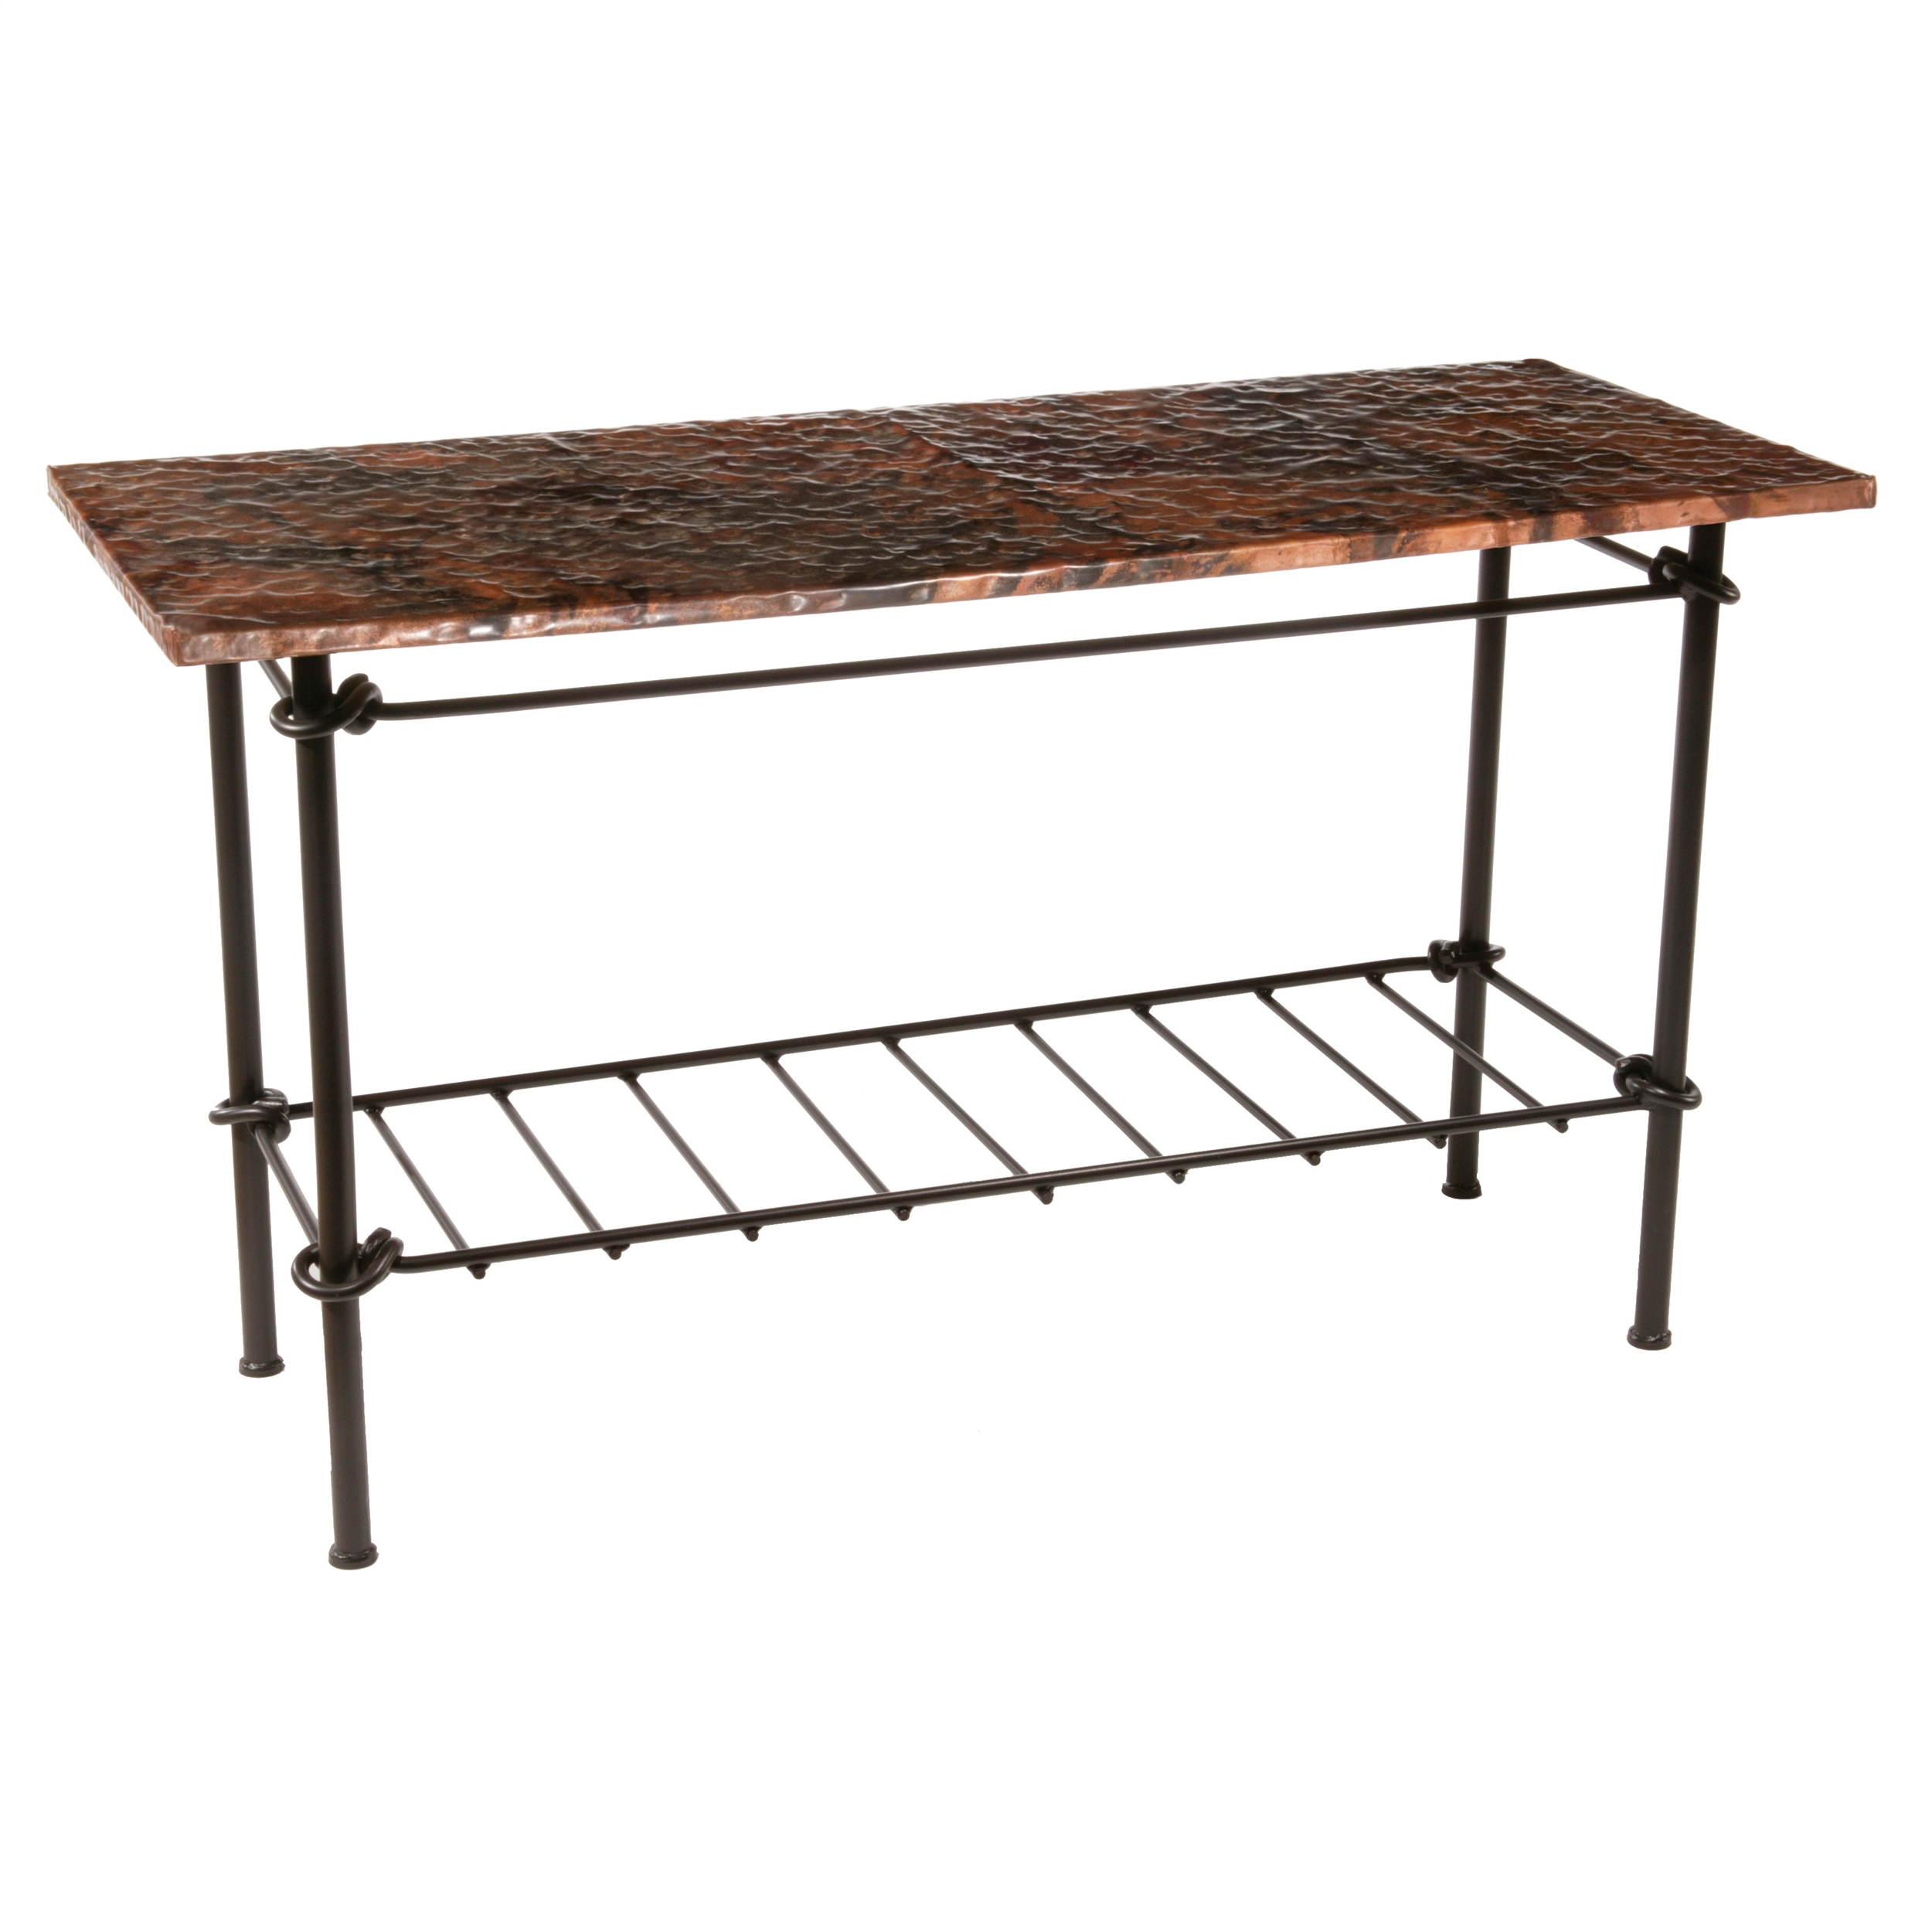 Iron Console Table : knot-console-table-901140-4.jpg